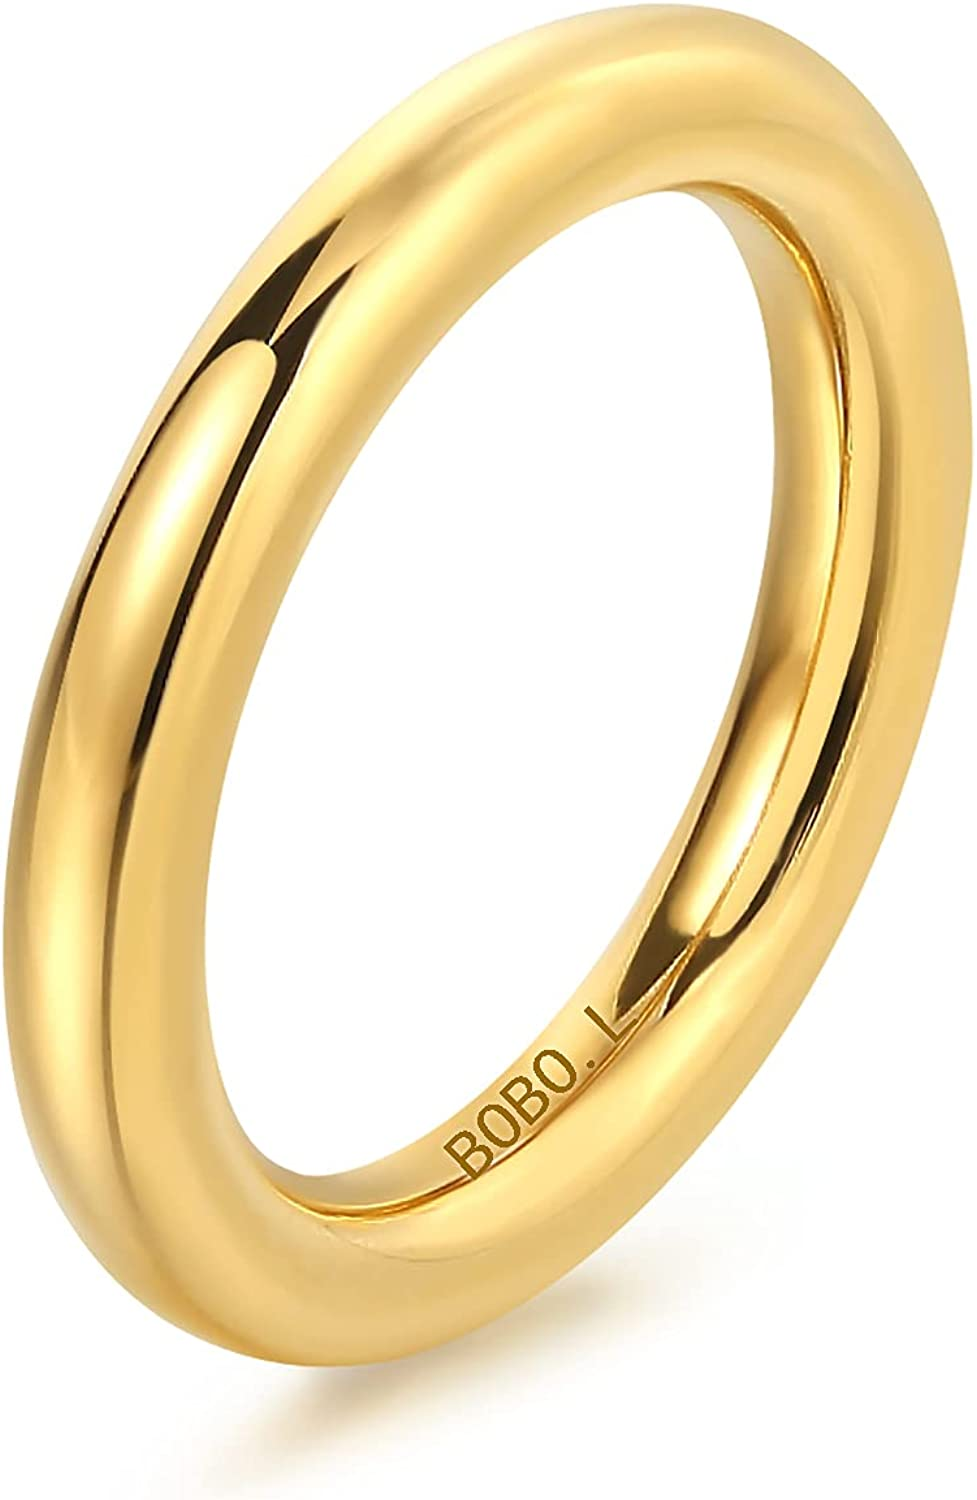 BOBOLOVER 14K Gold Filled 3mm Rings for Women Girls Stacking Bands Thumb Ring Plain Dome Comfort Fit Statement Round Thick Ring Size 5 to 10